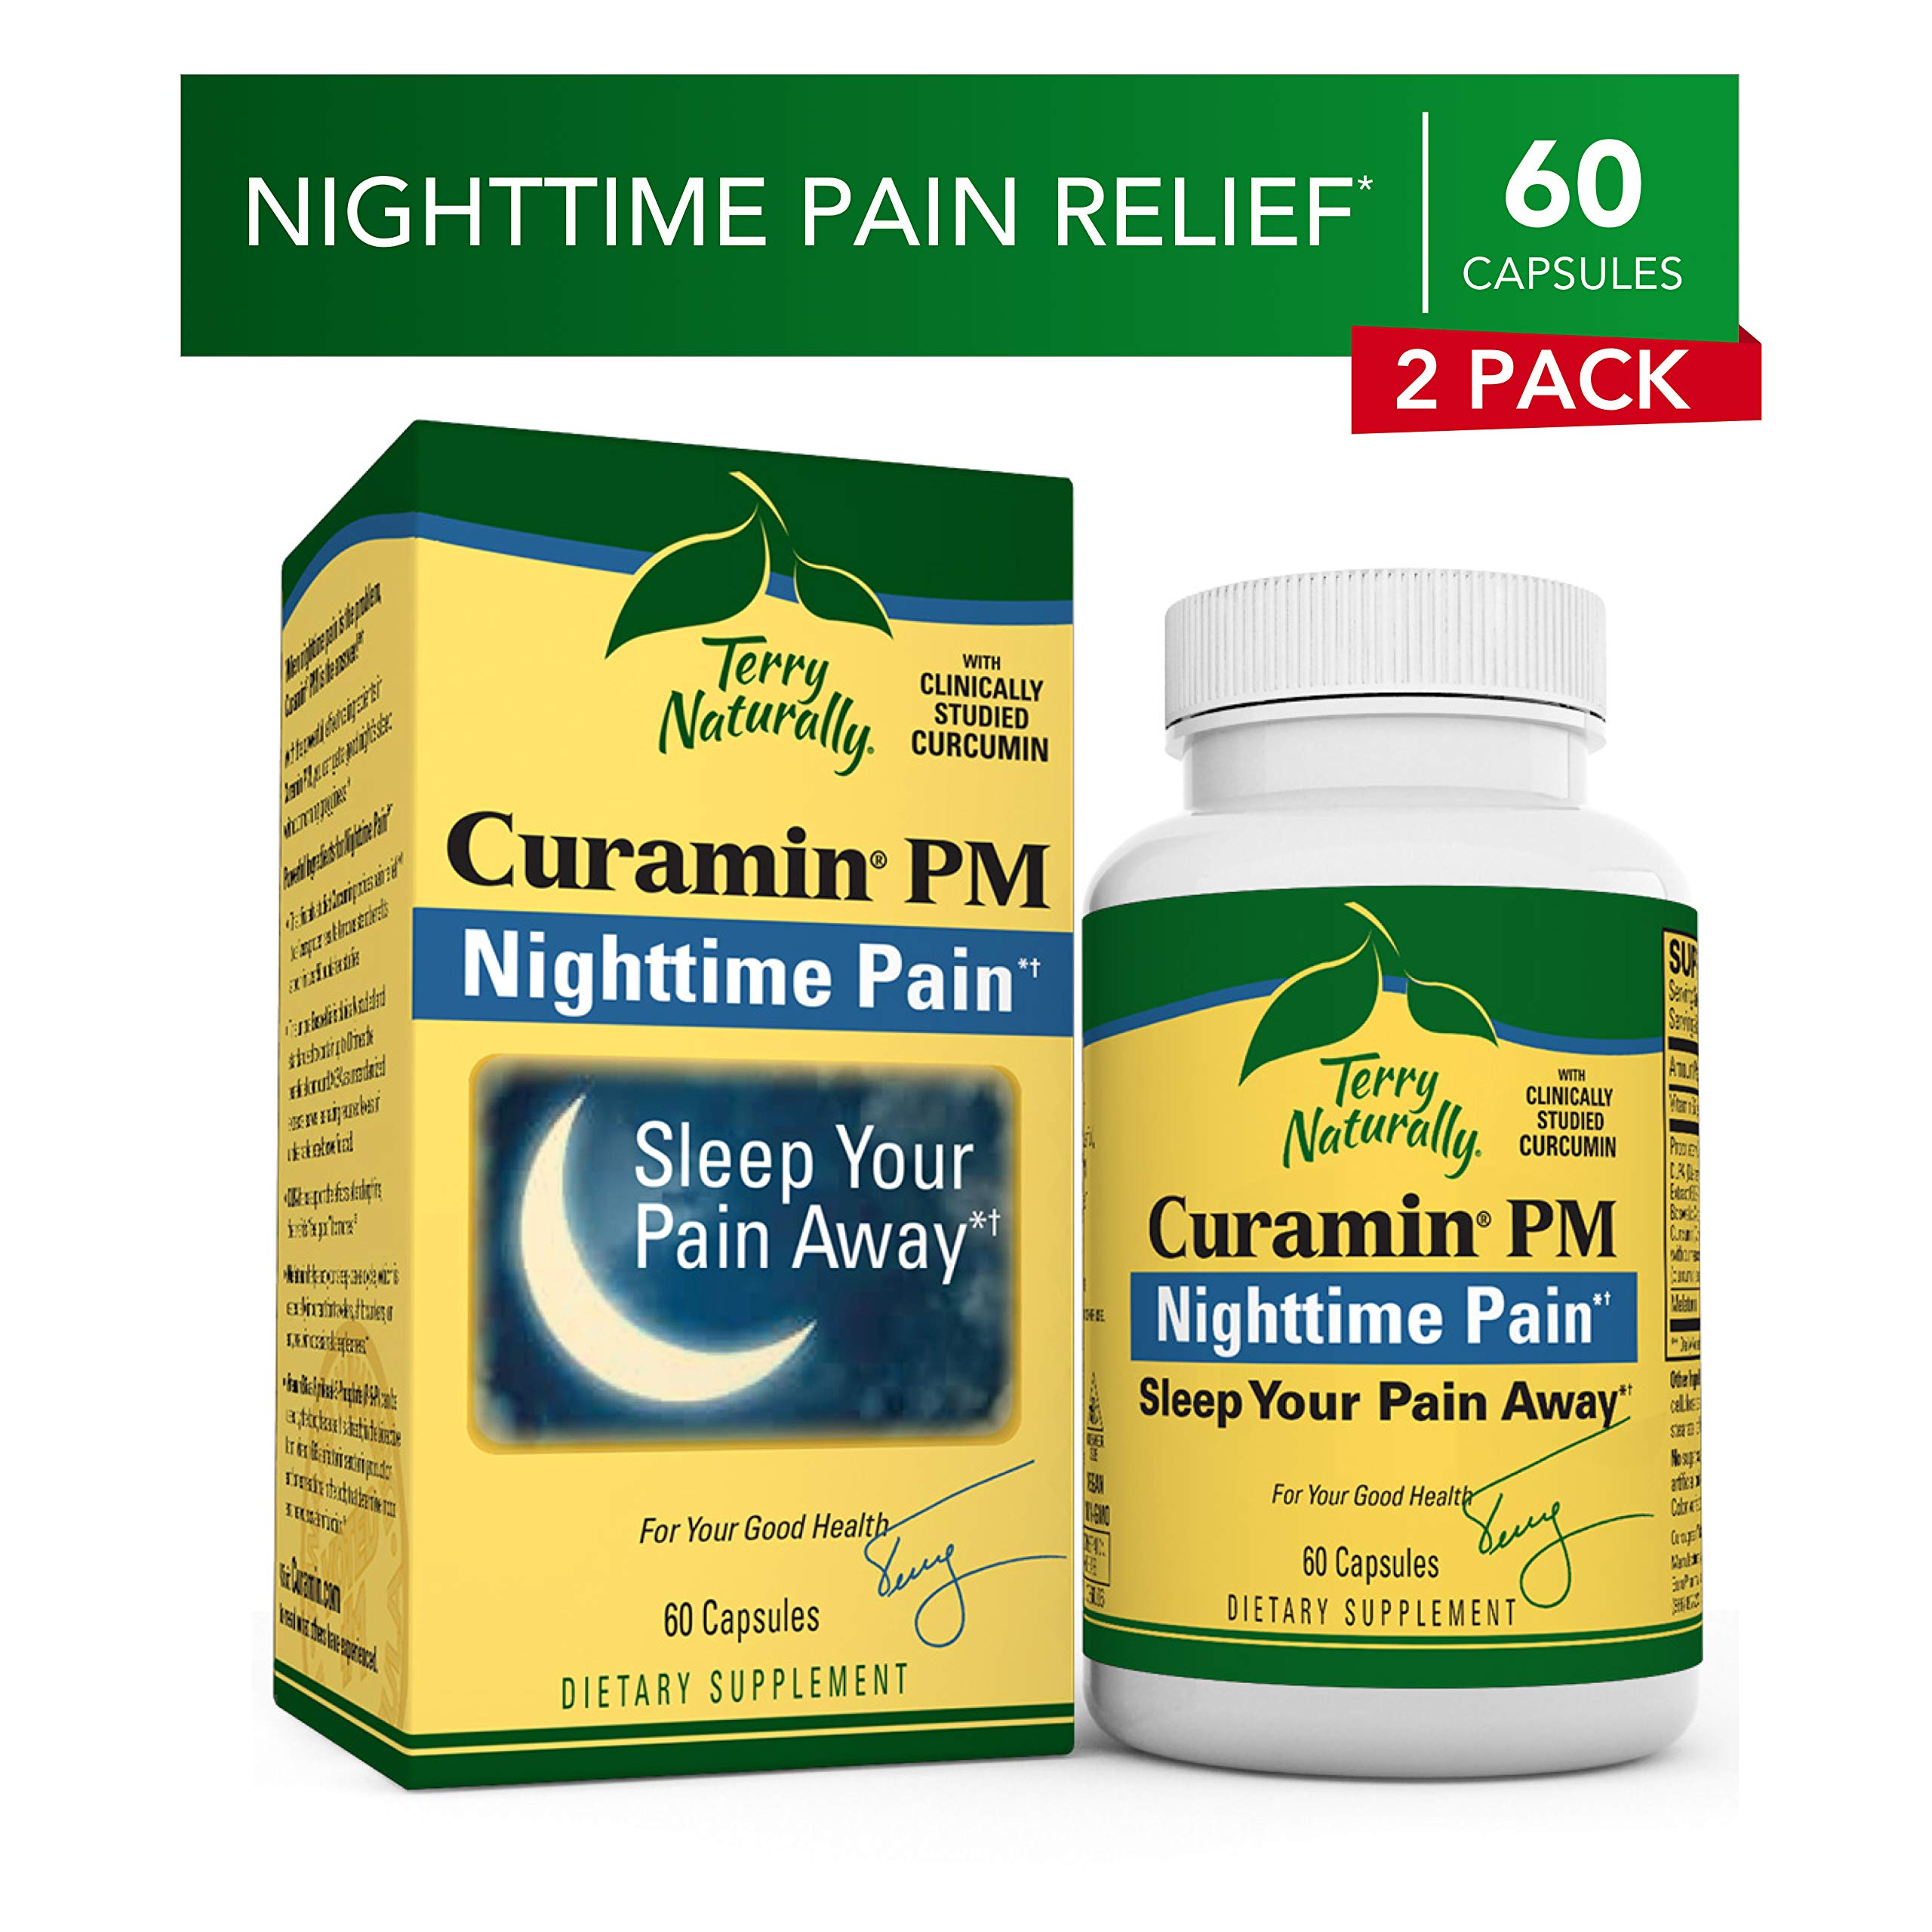 Terry Naturally Curamin PM (2 Pack) - 60 Vegan Capsules - Non-Habit Forming Nighttime Pain Relief Supplement, Contains Curcumin & Melatonin - Non-GMO, Gluten-Free, Kosher - 60 Total Servings